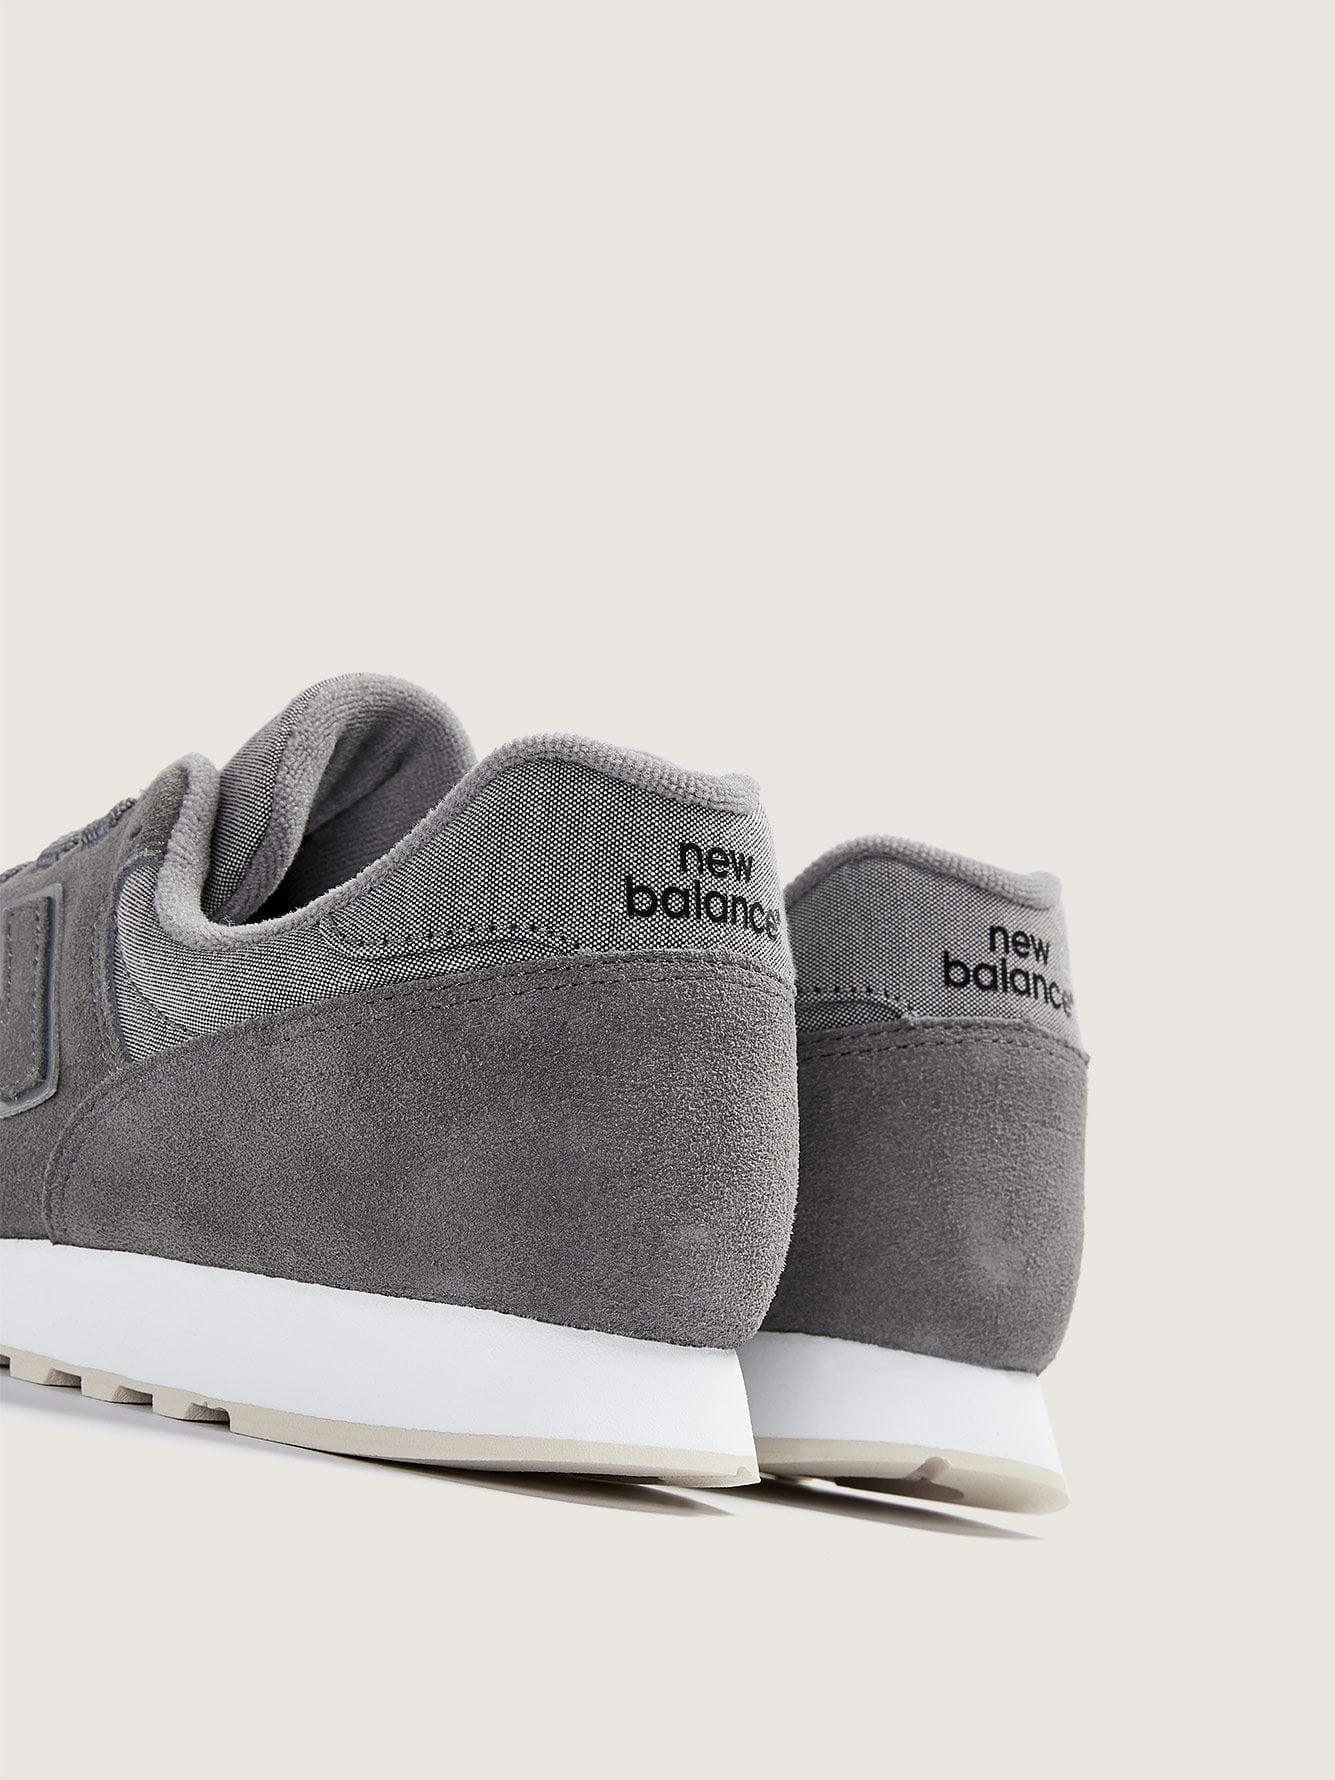 Wide Vintage Sneakers - New Balance